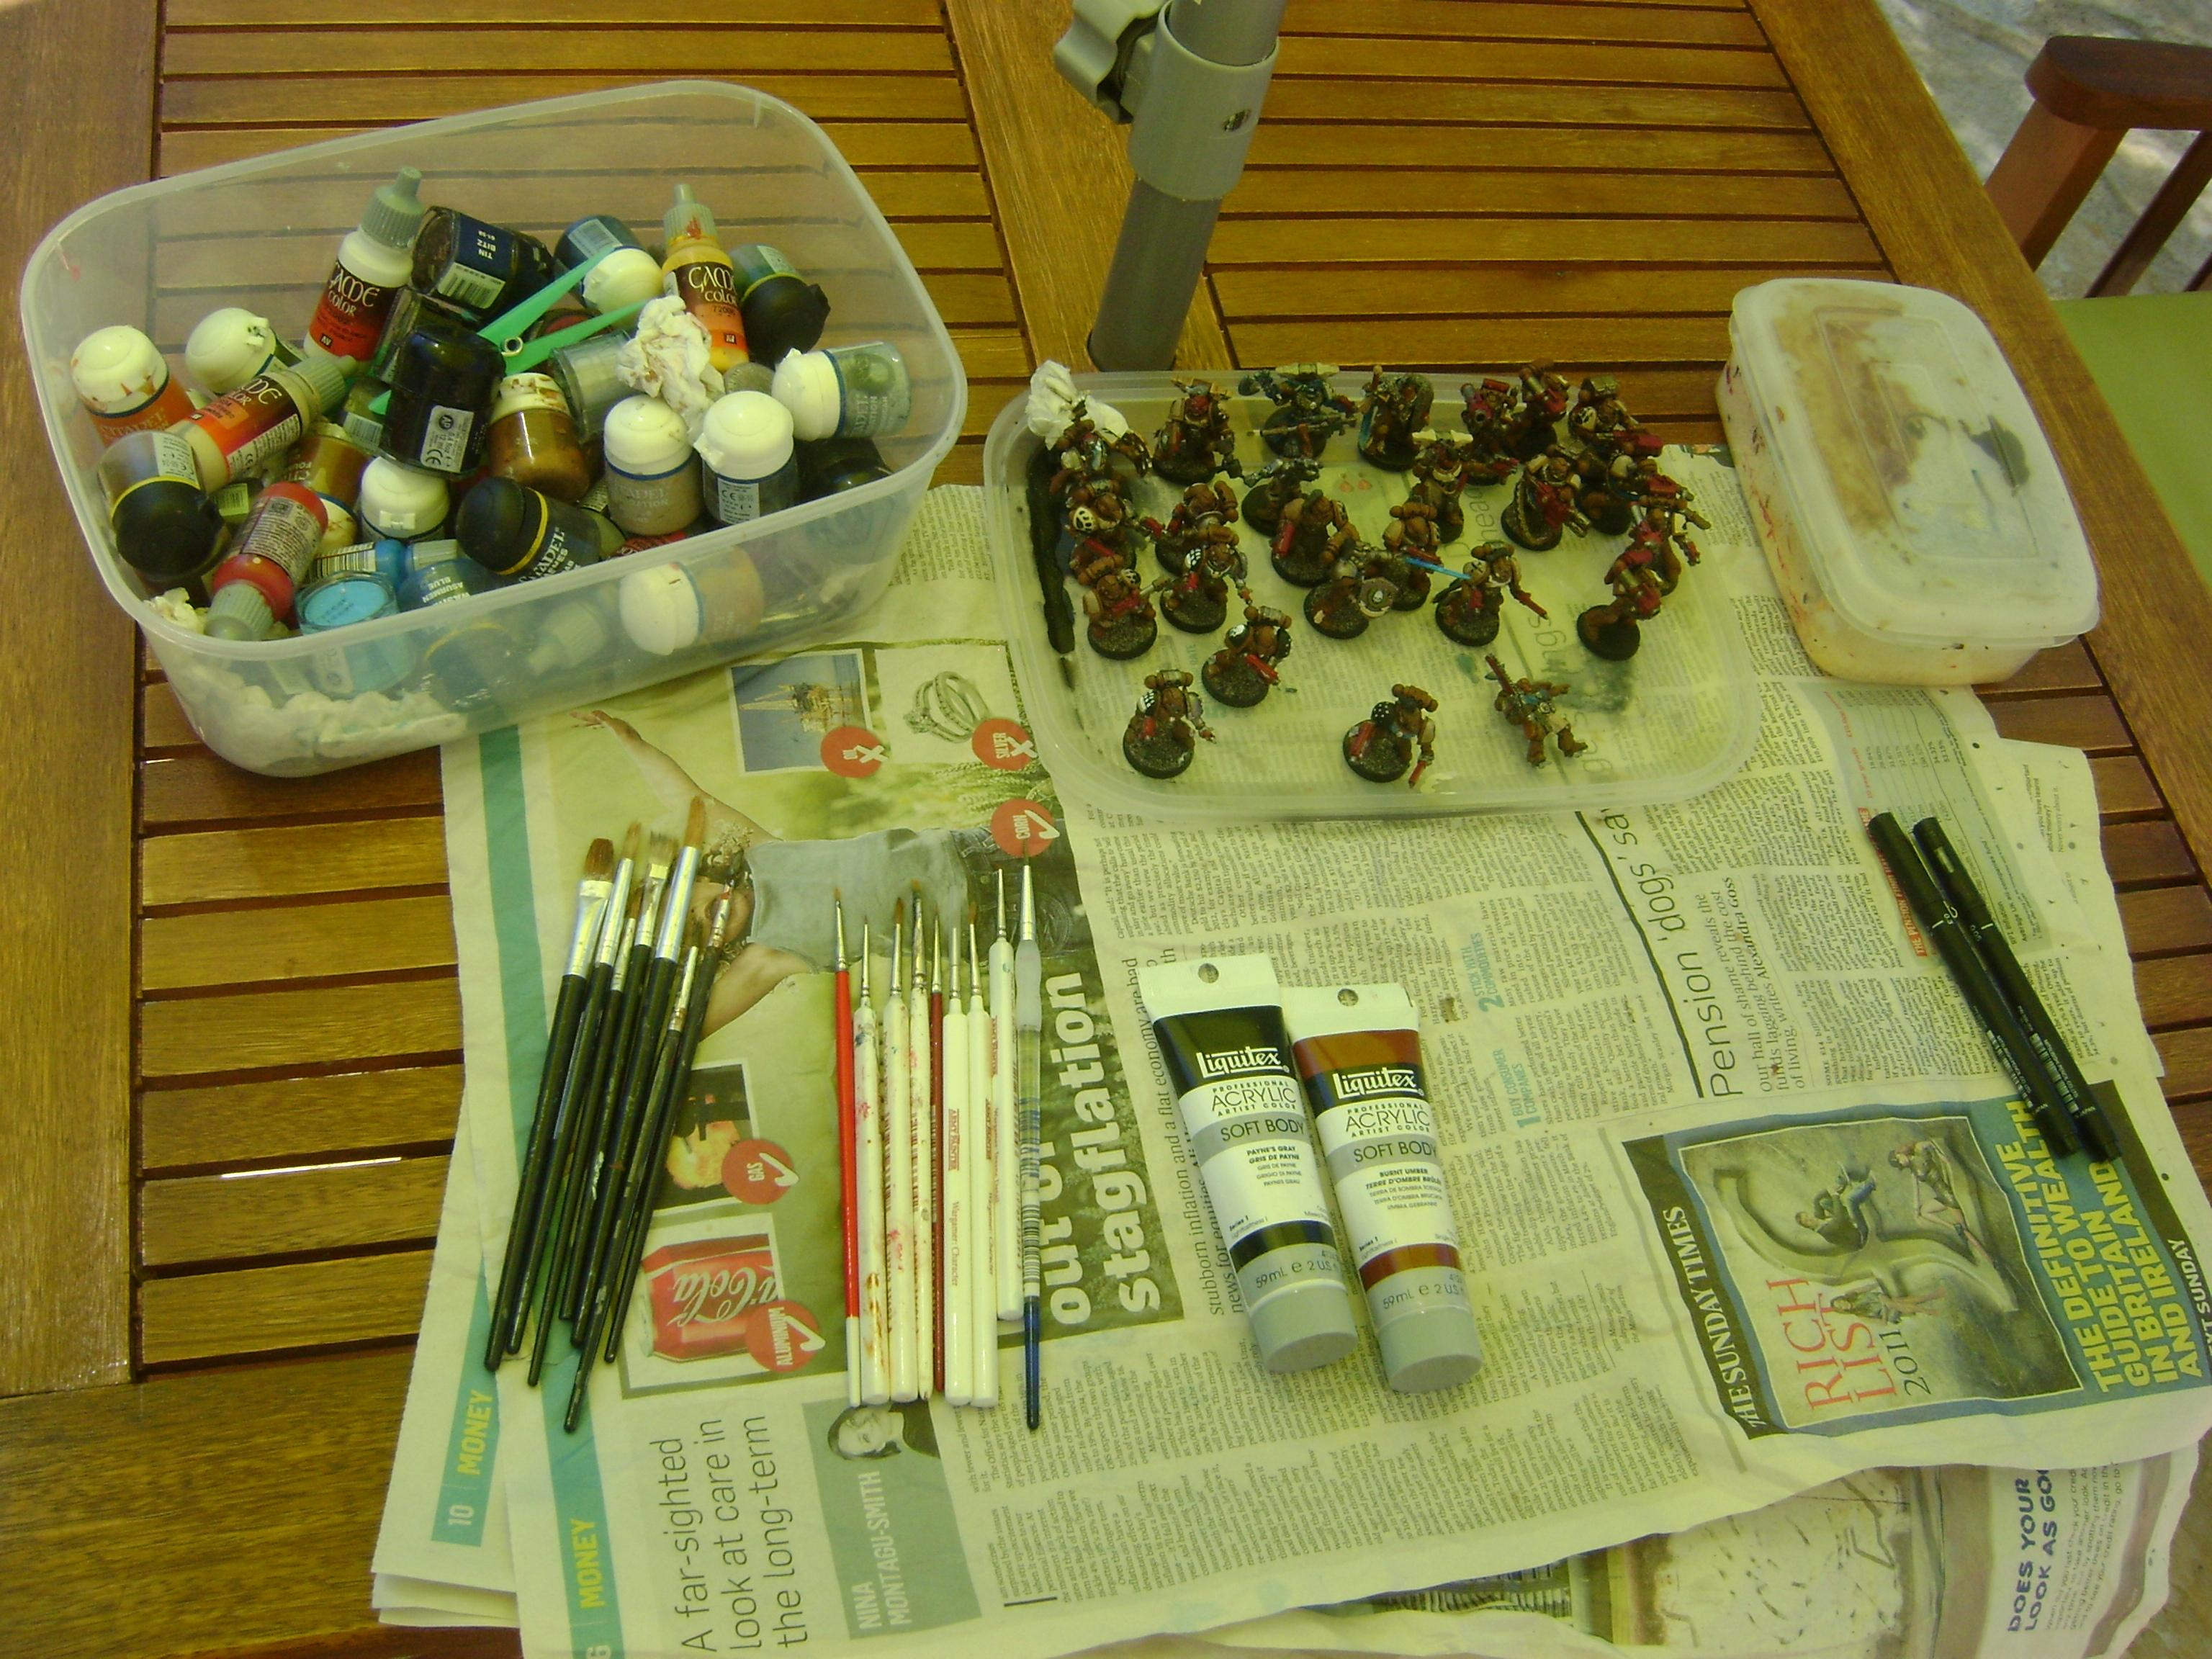 My Painting station